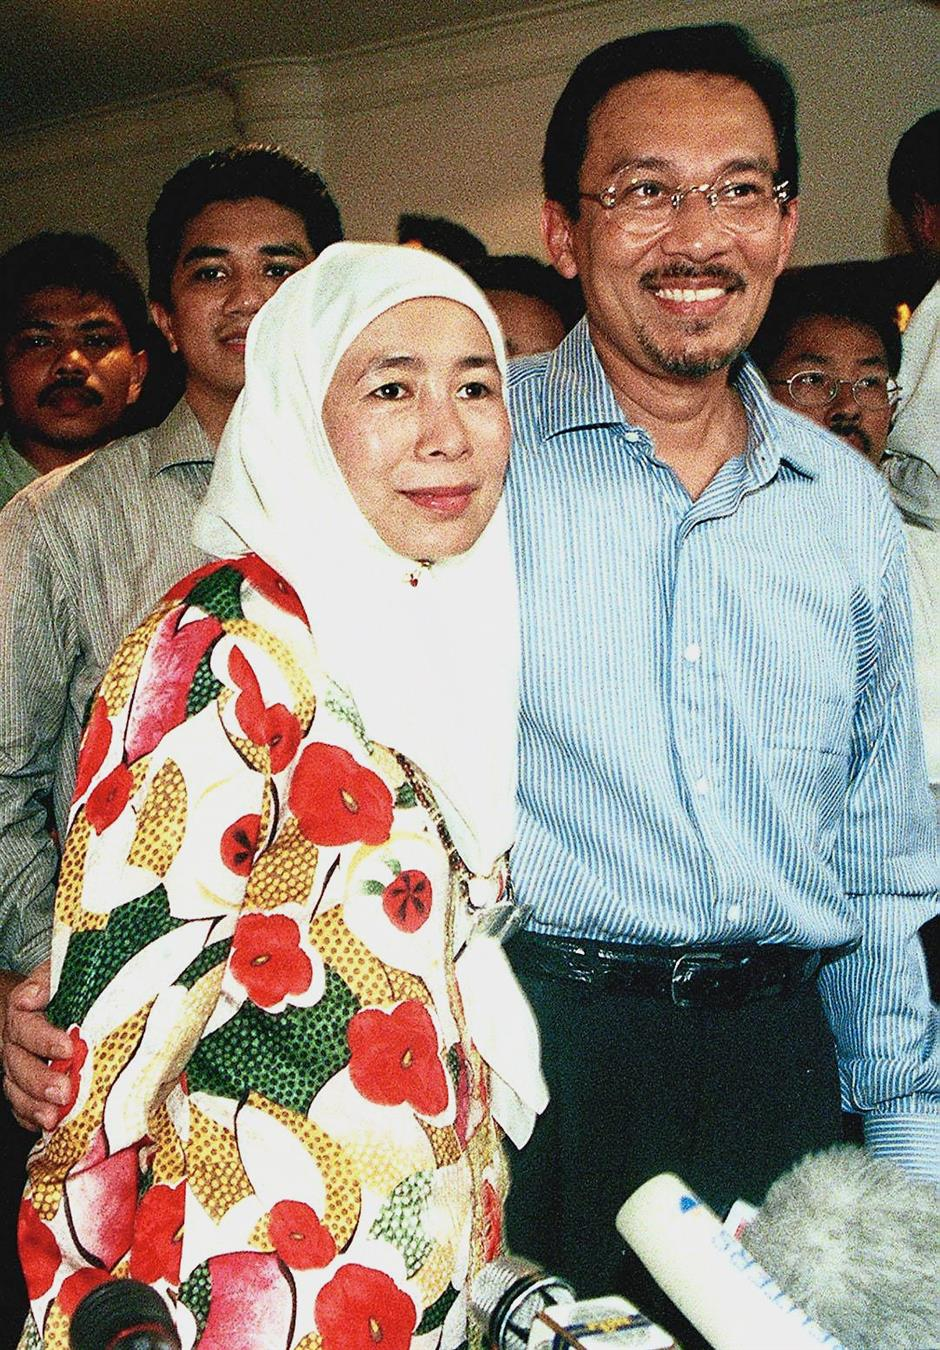 Through thick and thin: Dr Wan Azizah giving her husband moral support after Anwar gave a press conference to explain his removal as deputy prime minister at his residence in Bukit Damansara in 1998.